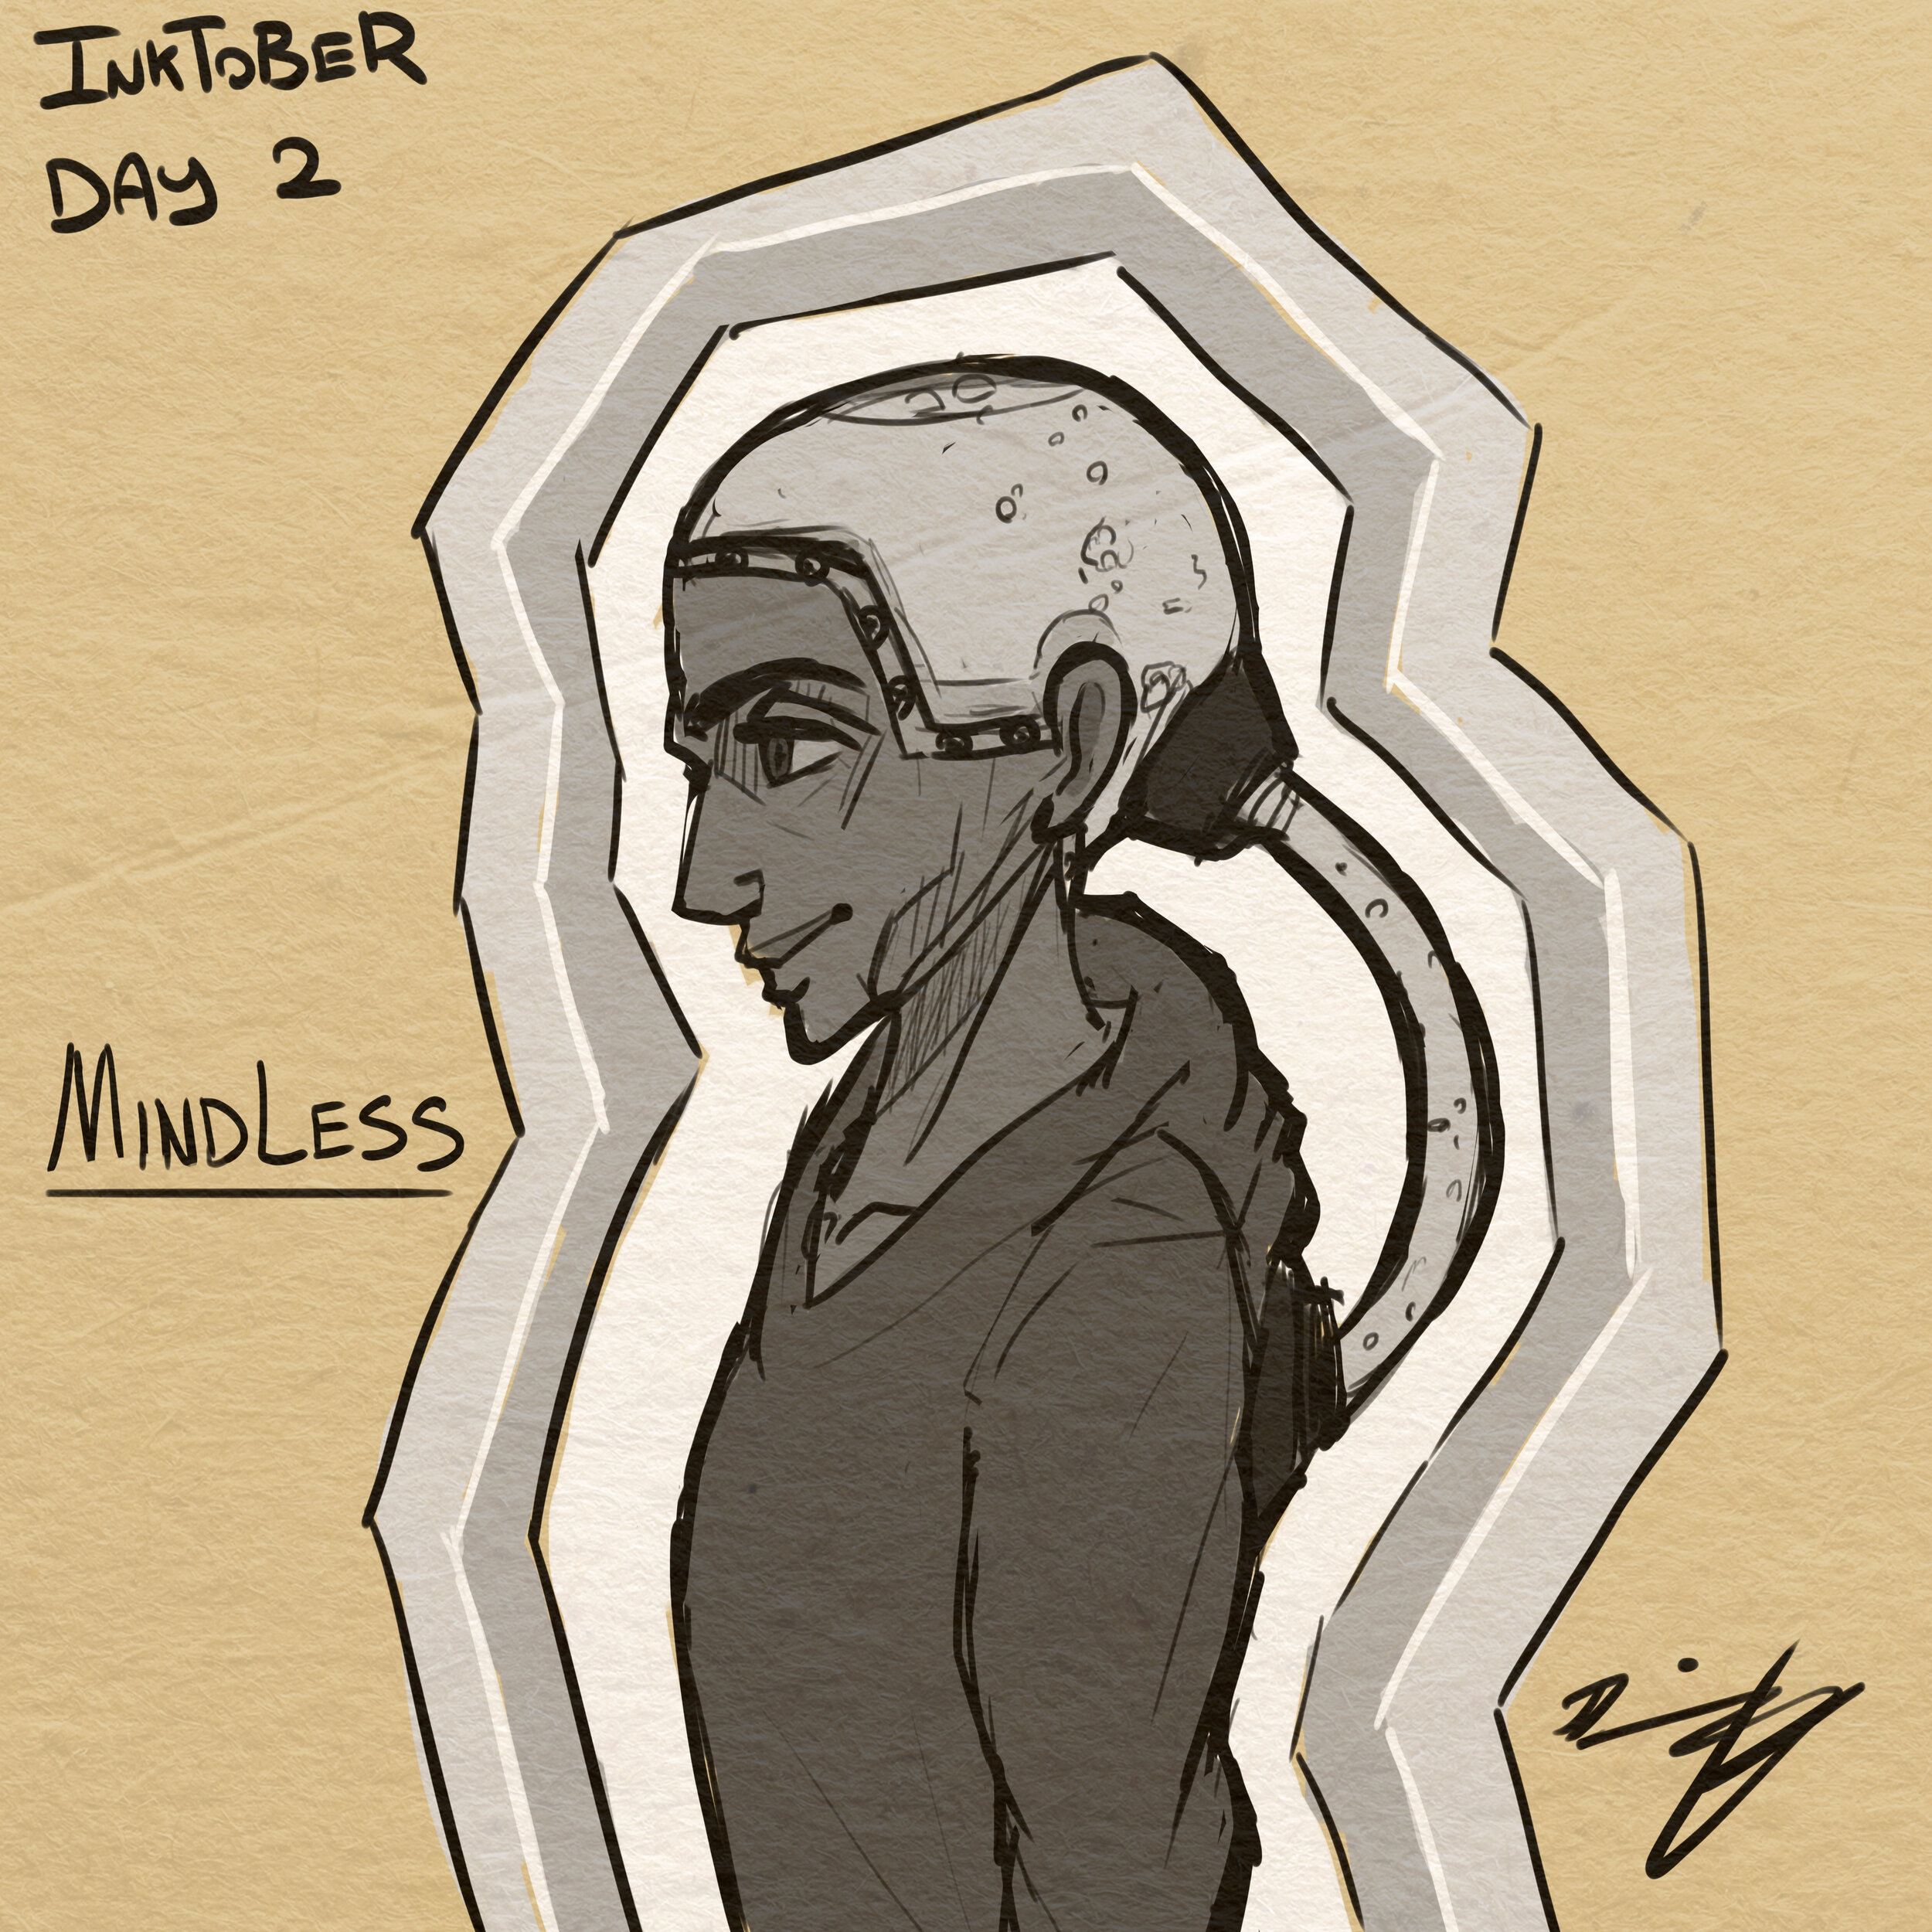 Day 2 - Mindless